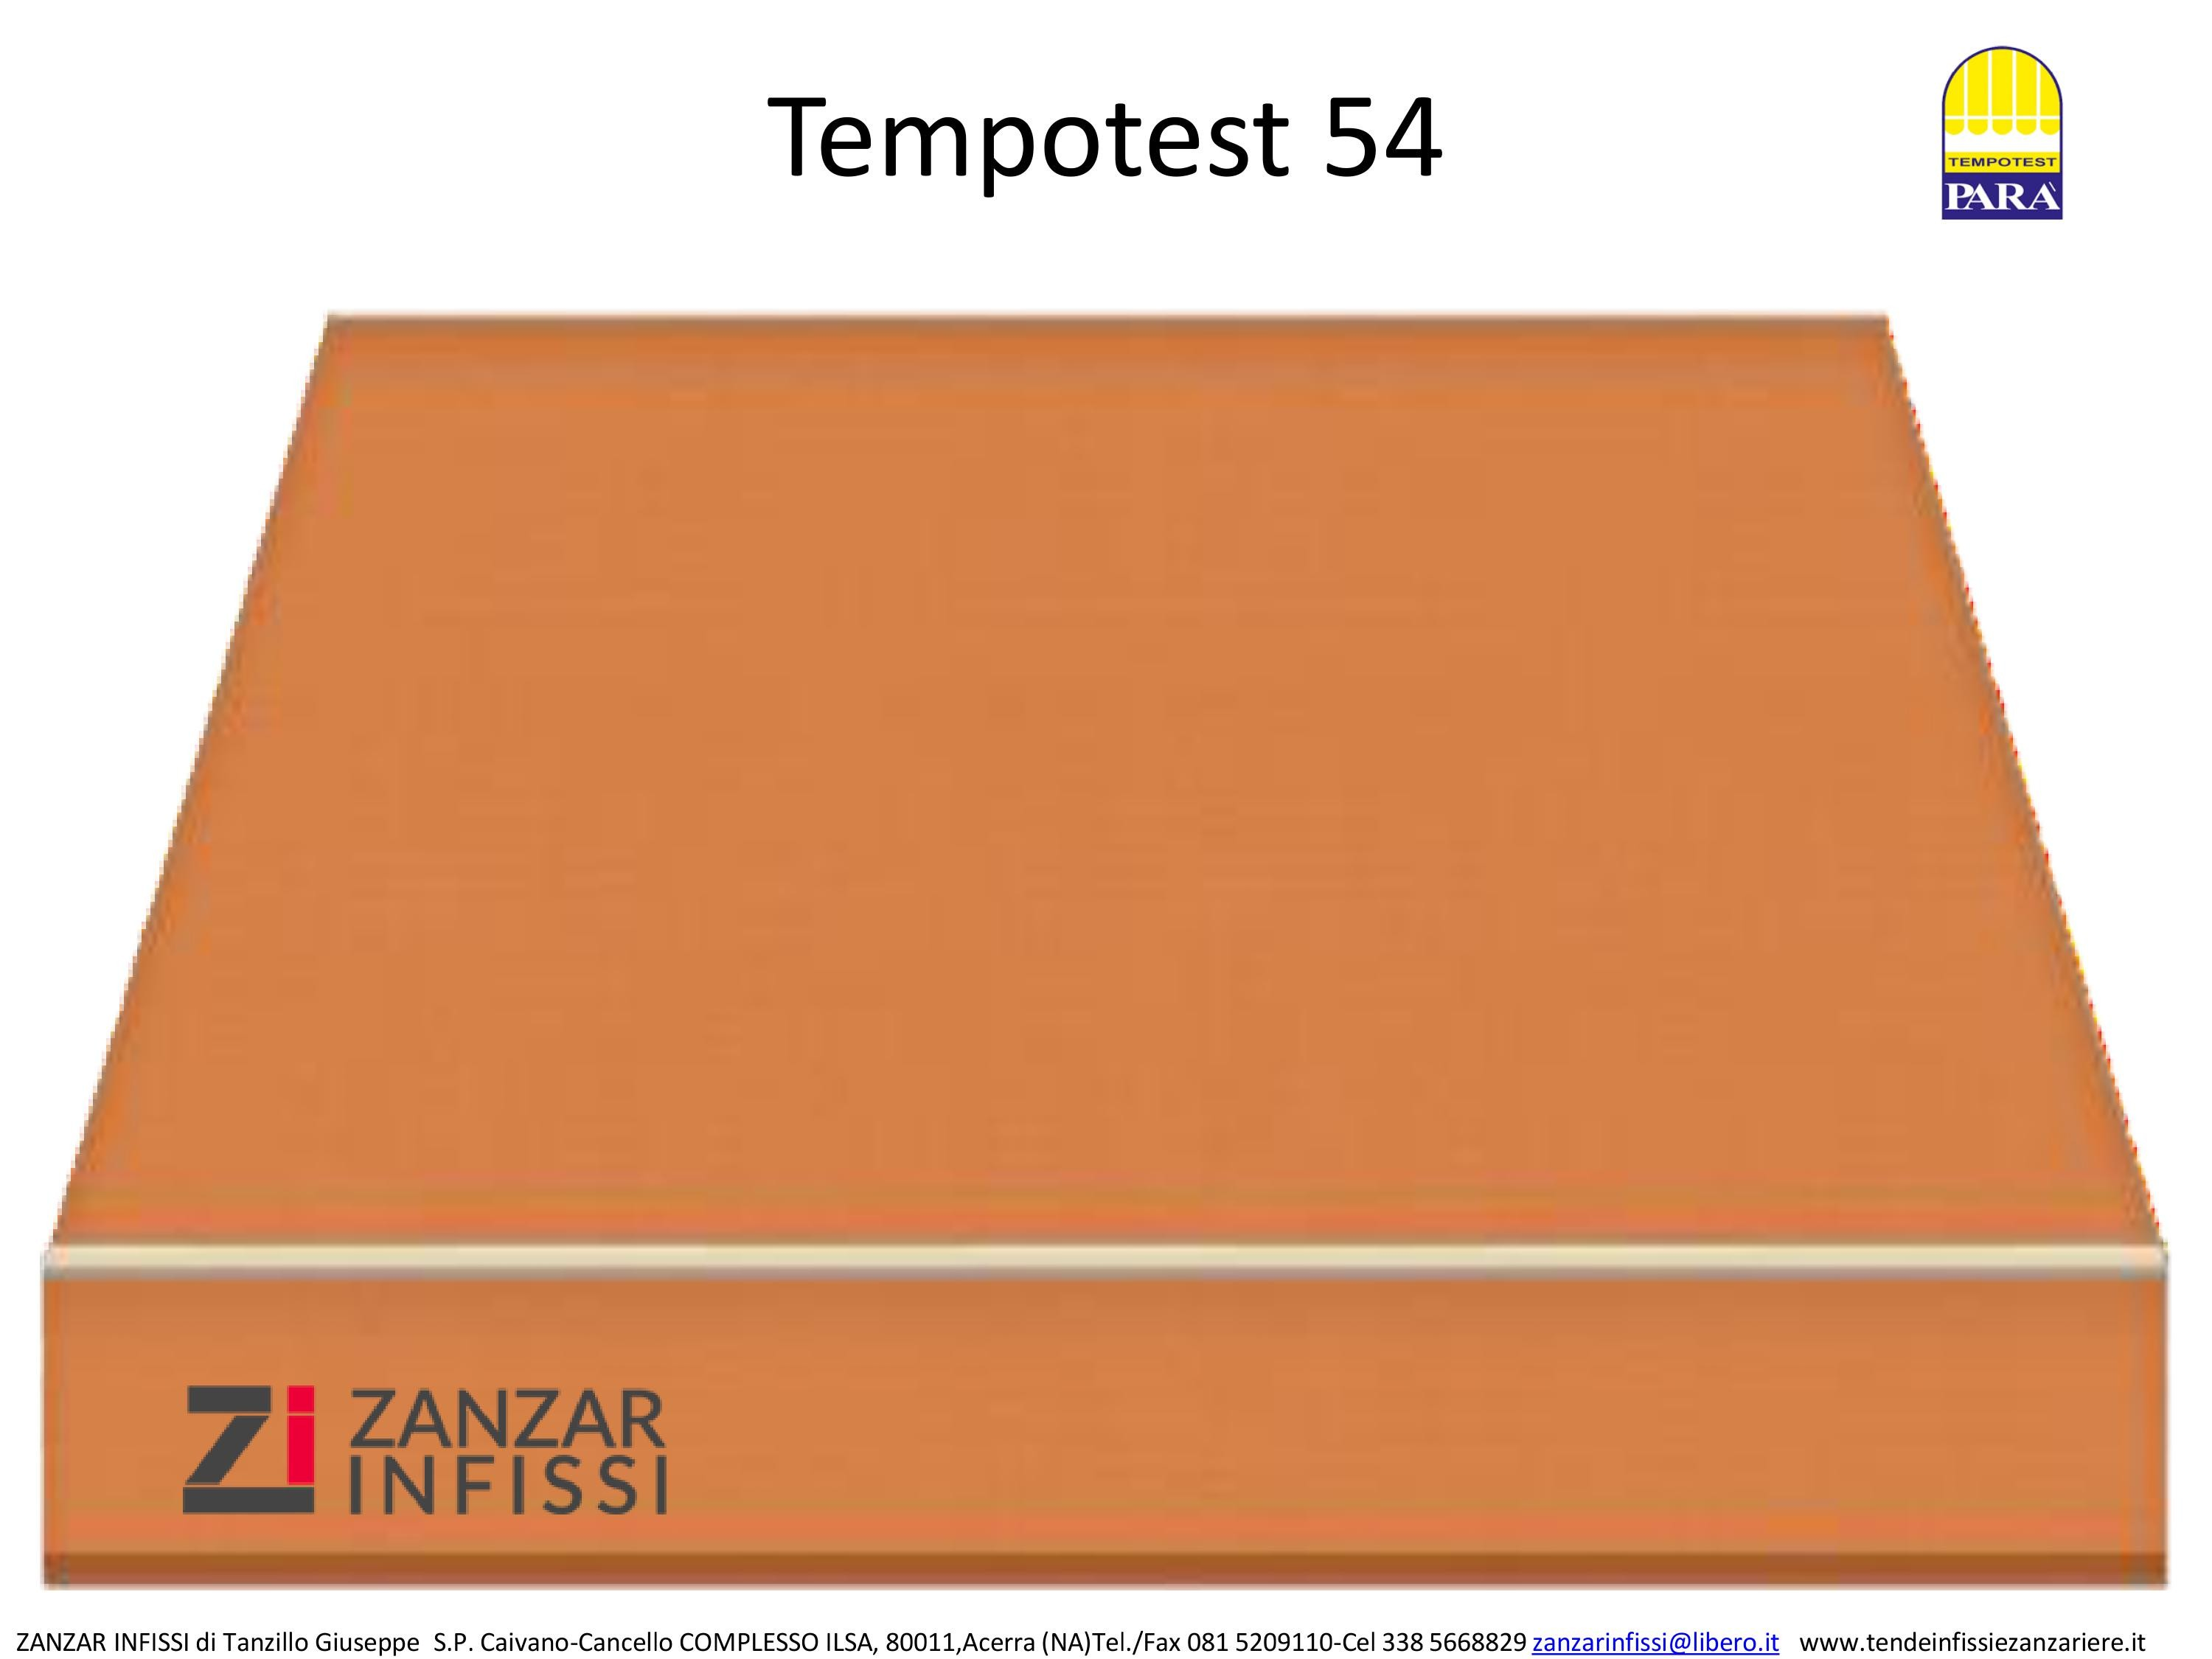 Tempotest 54